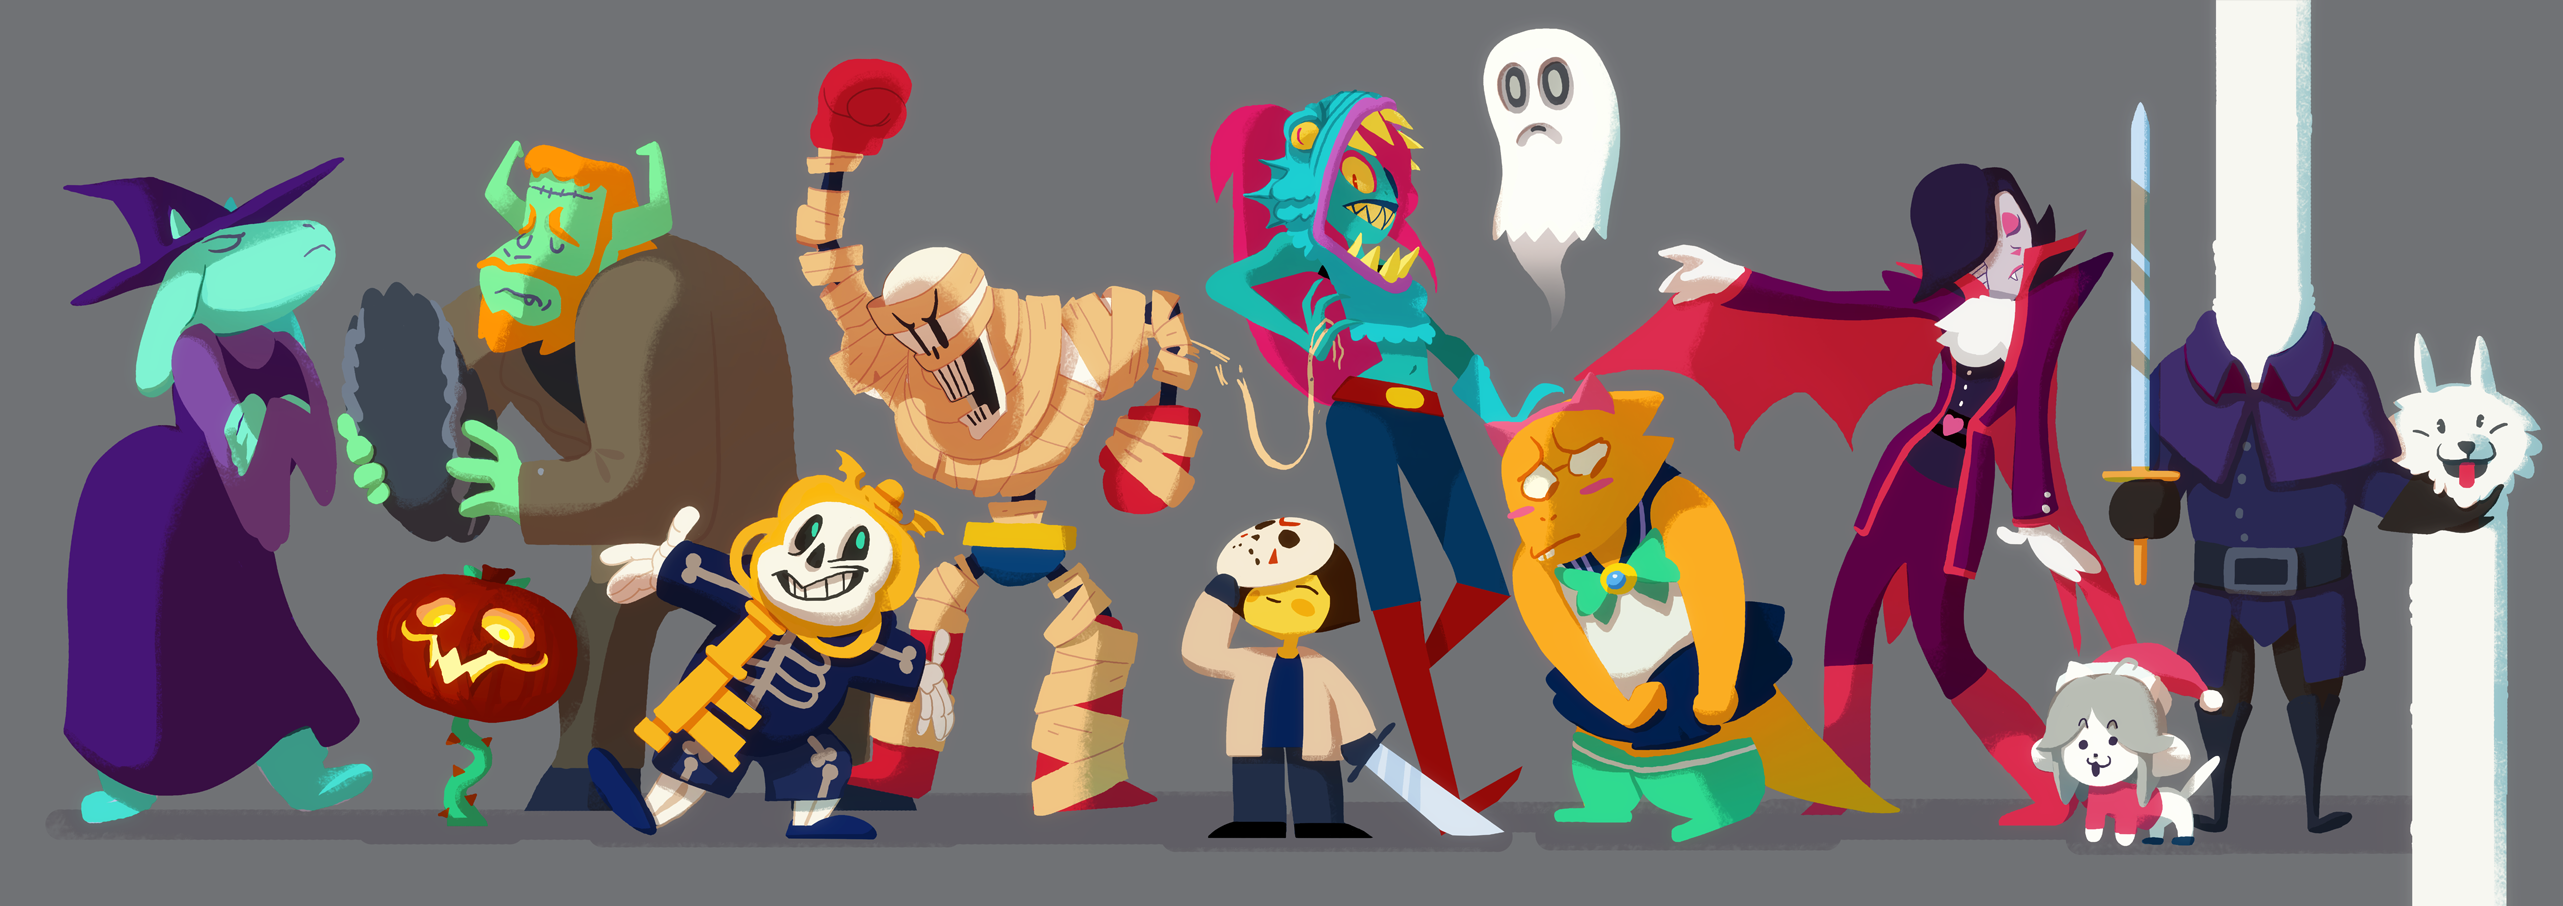 Undertale Halloween by Art Calavera on OkeyShare 2563x906